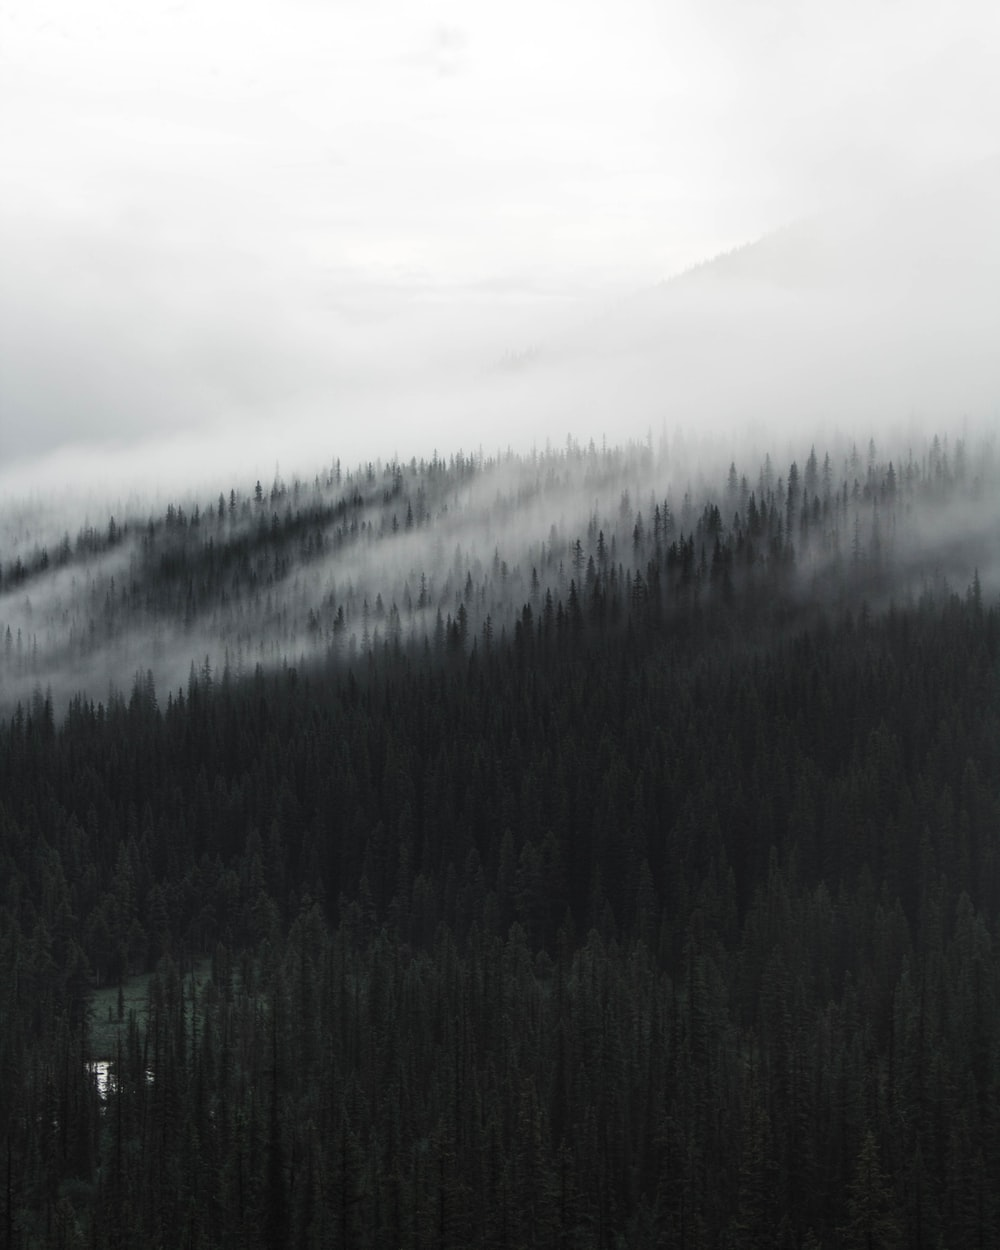 grayscale photography of forest covered with fogs